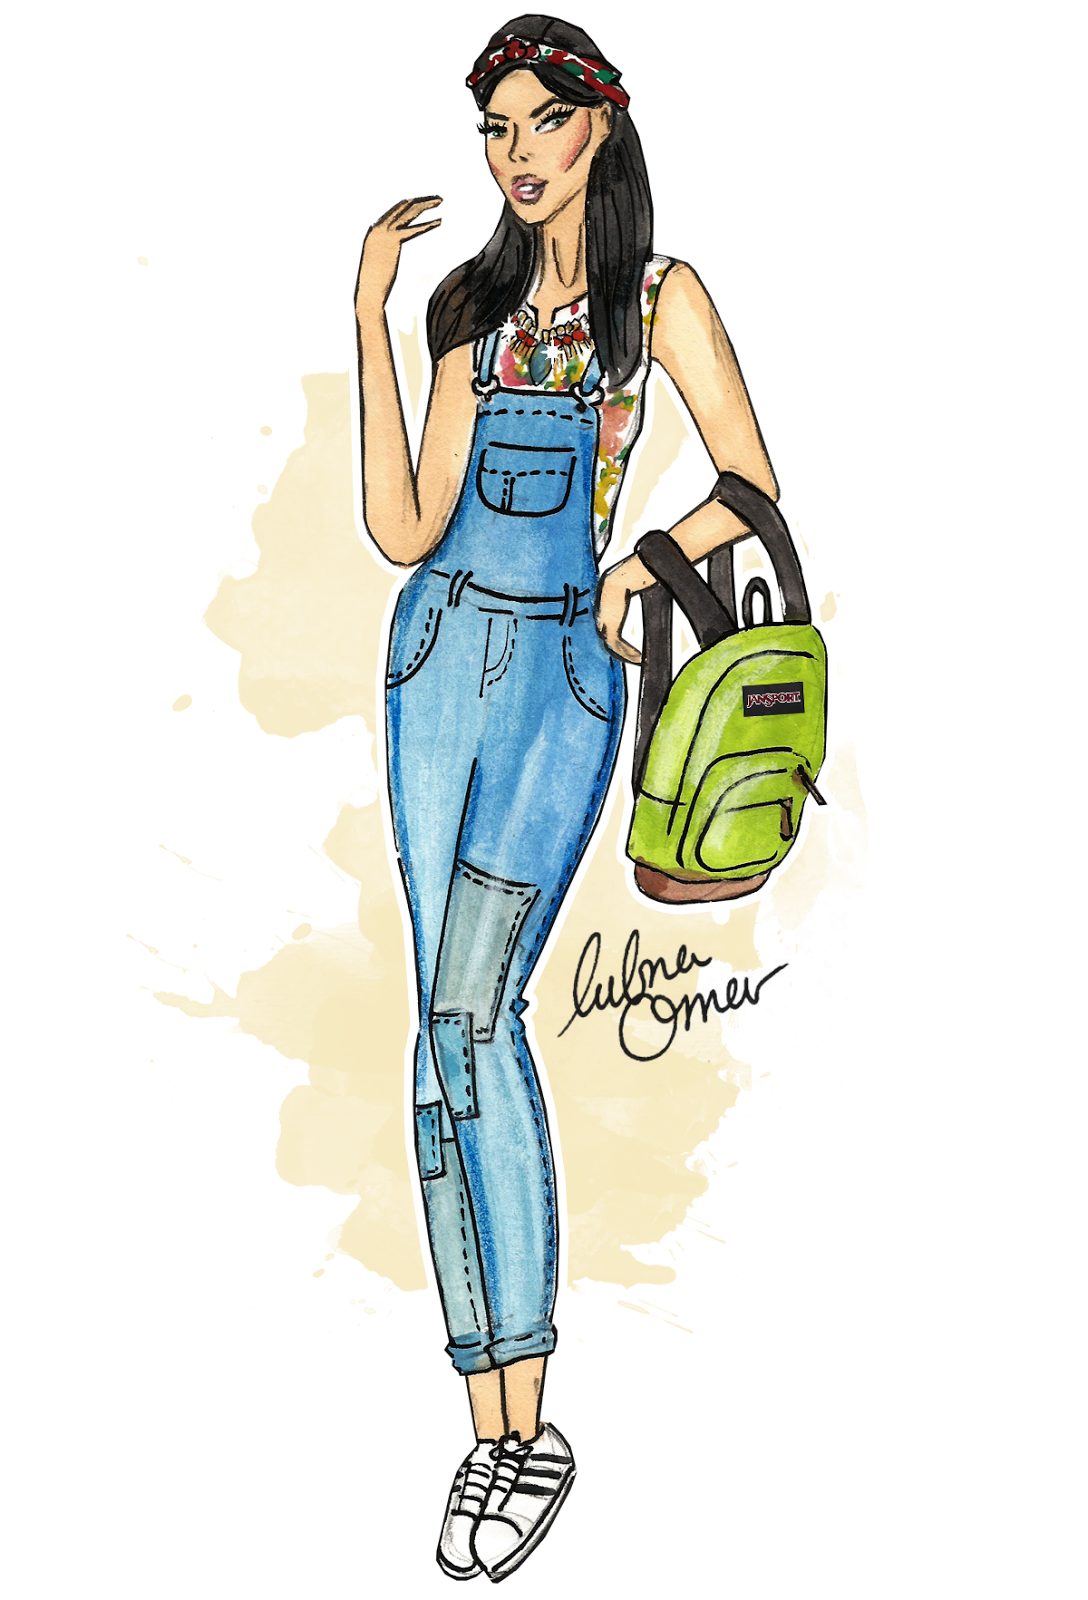 back to school outfit inspiration playful spirits illustration by lubna omar